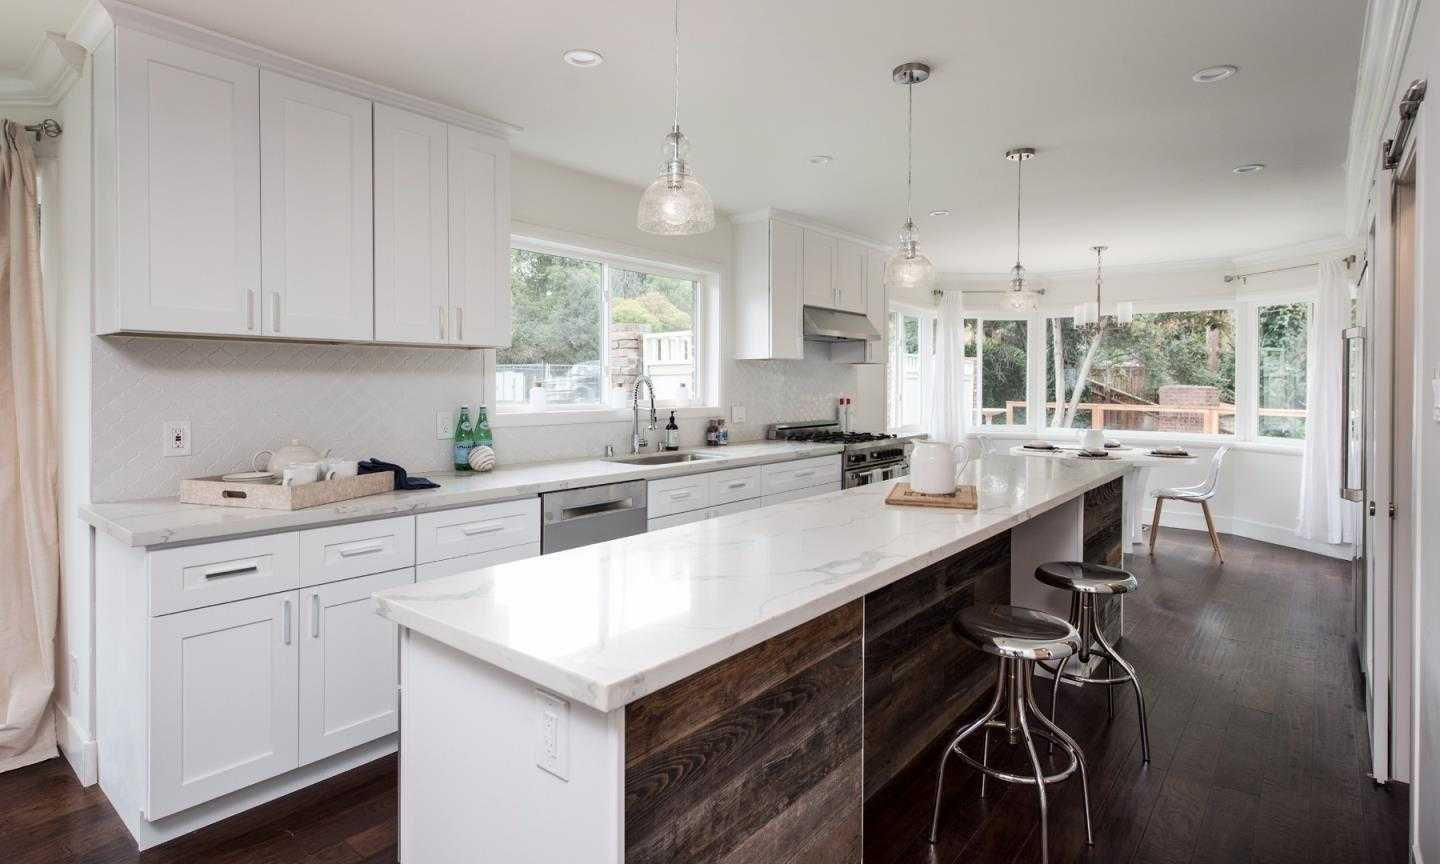 $1,899,000 - 5Br/4Ba -  for Sale in San Jose